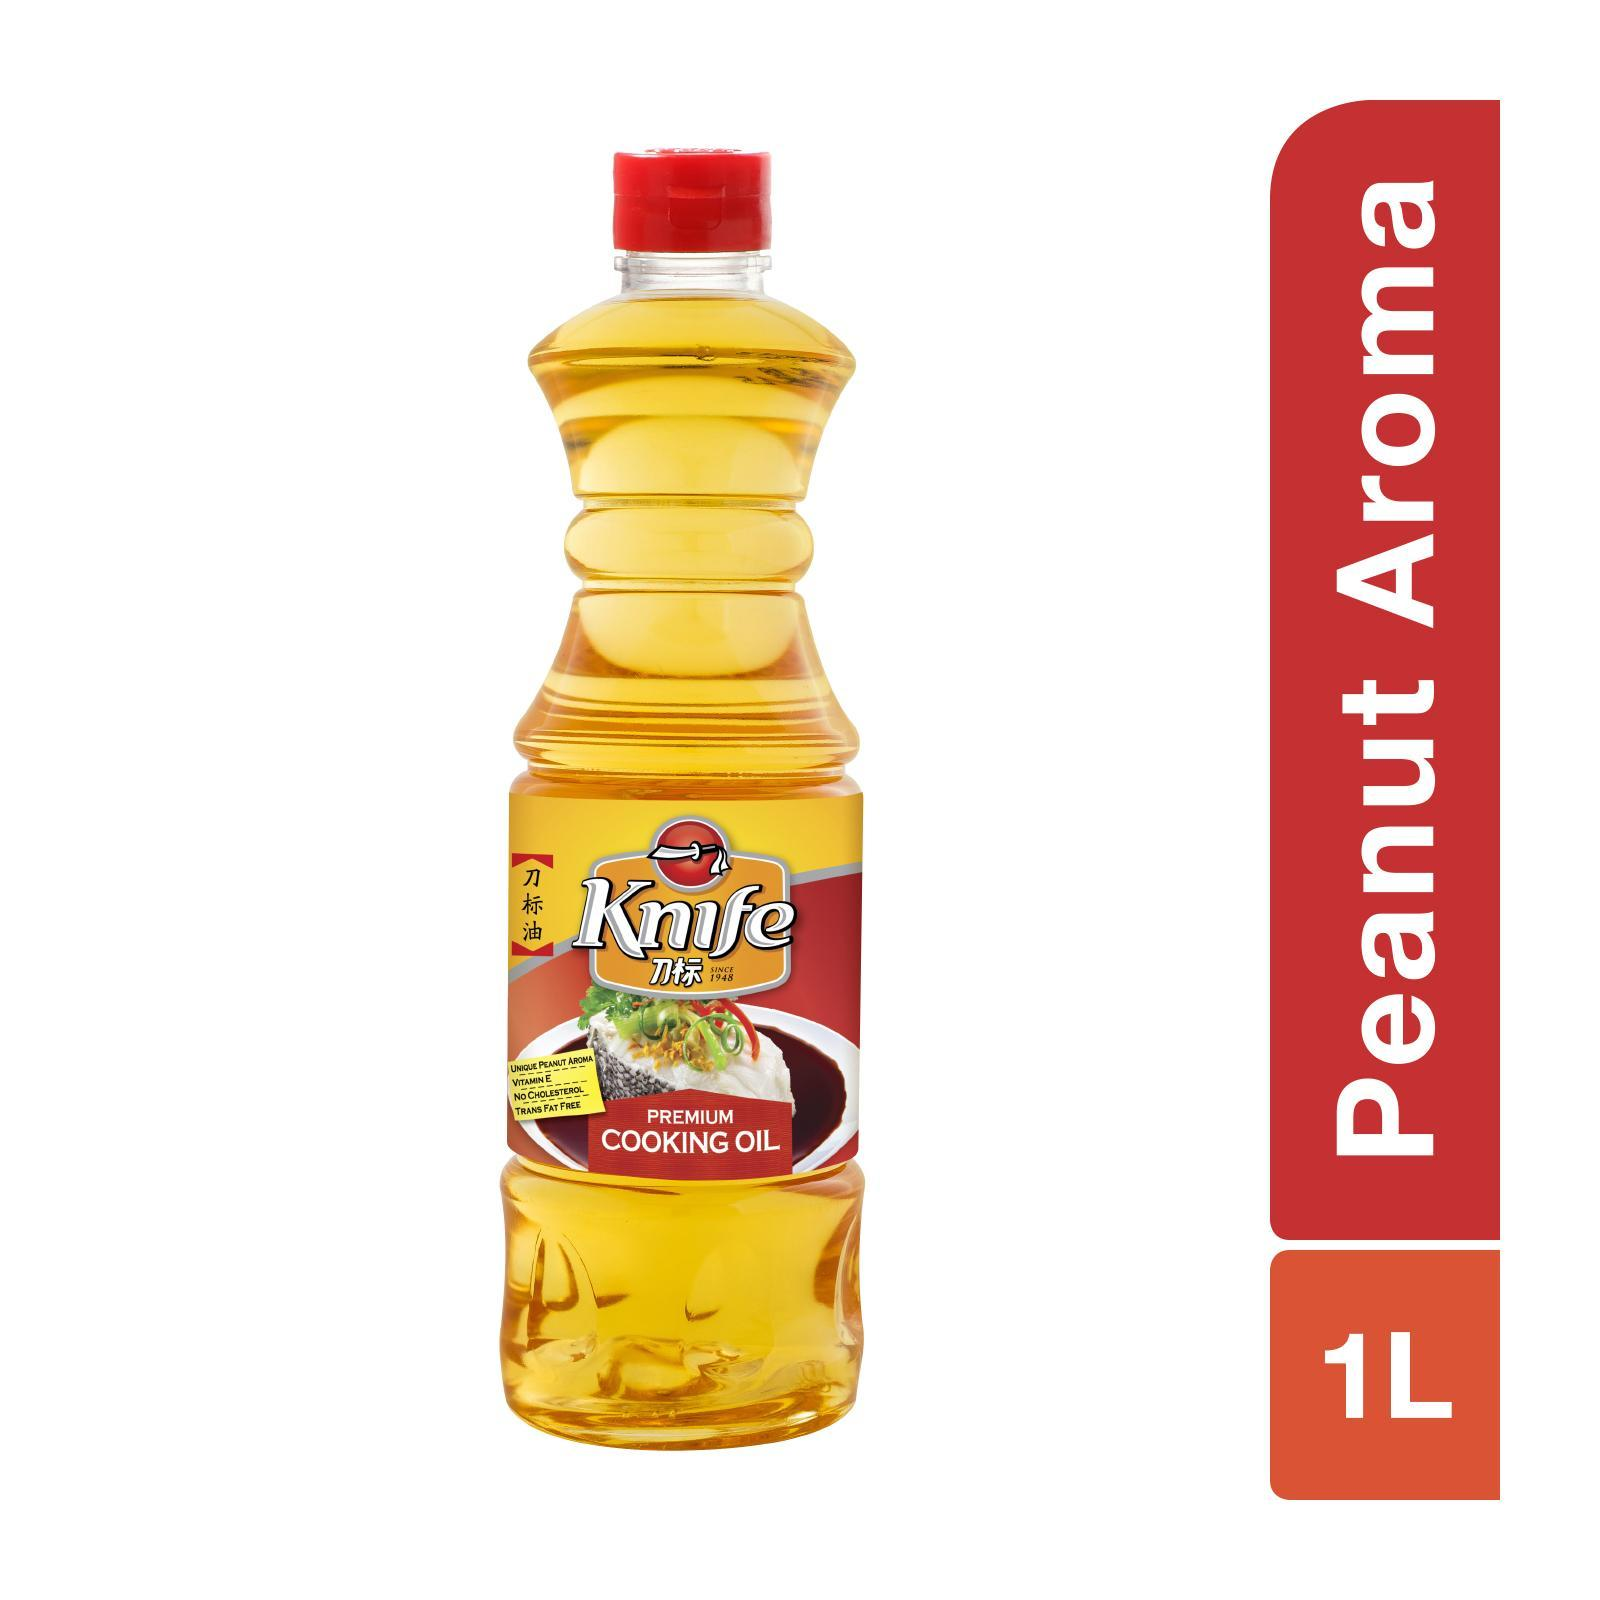 KNIFE Premium Cooking Oil 1L